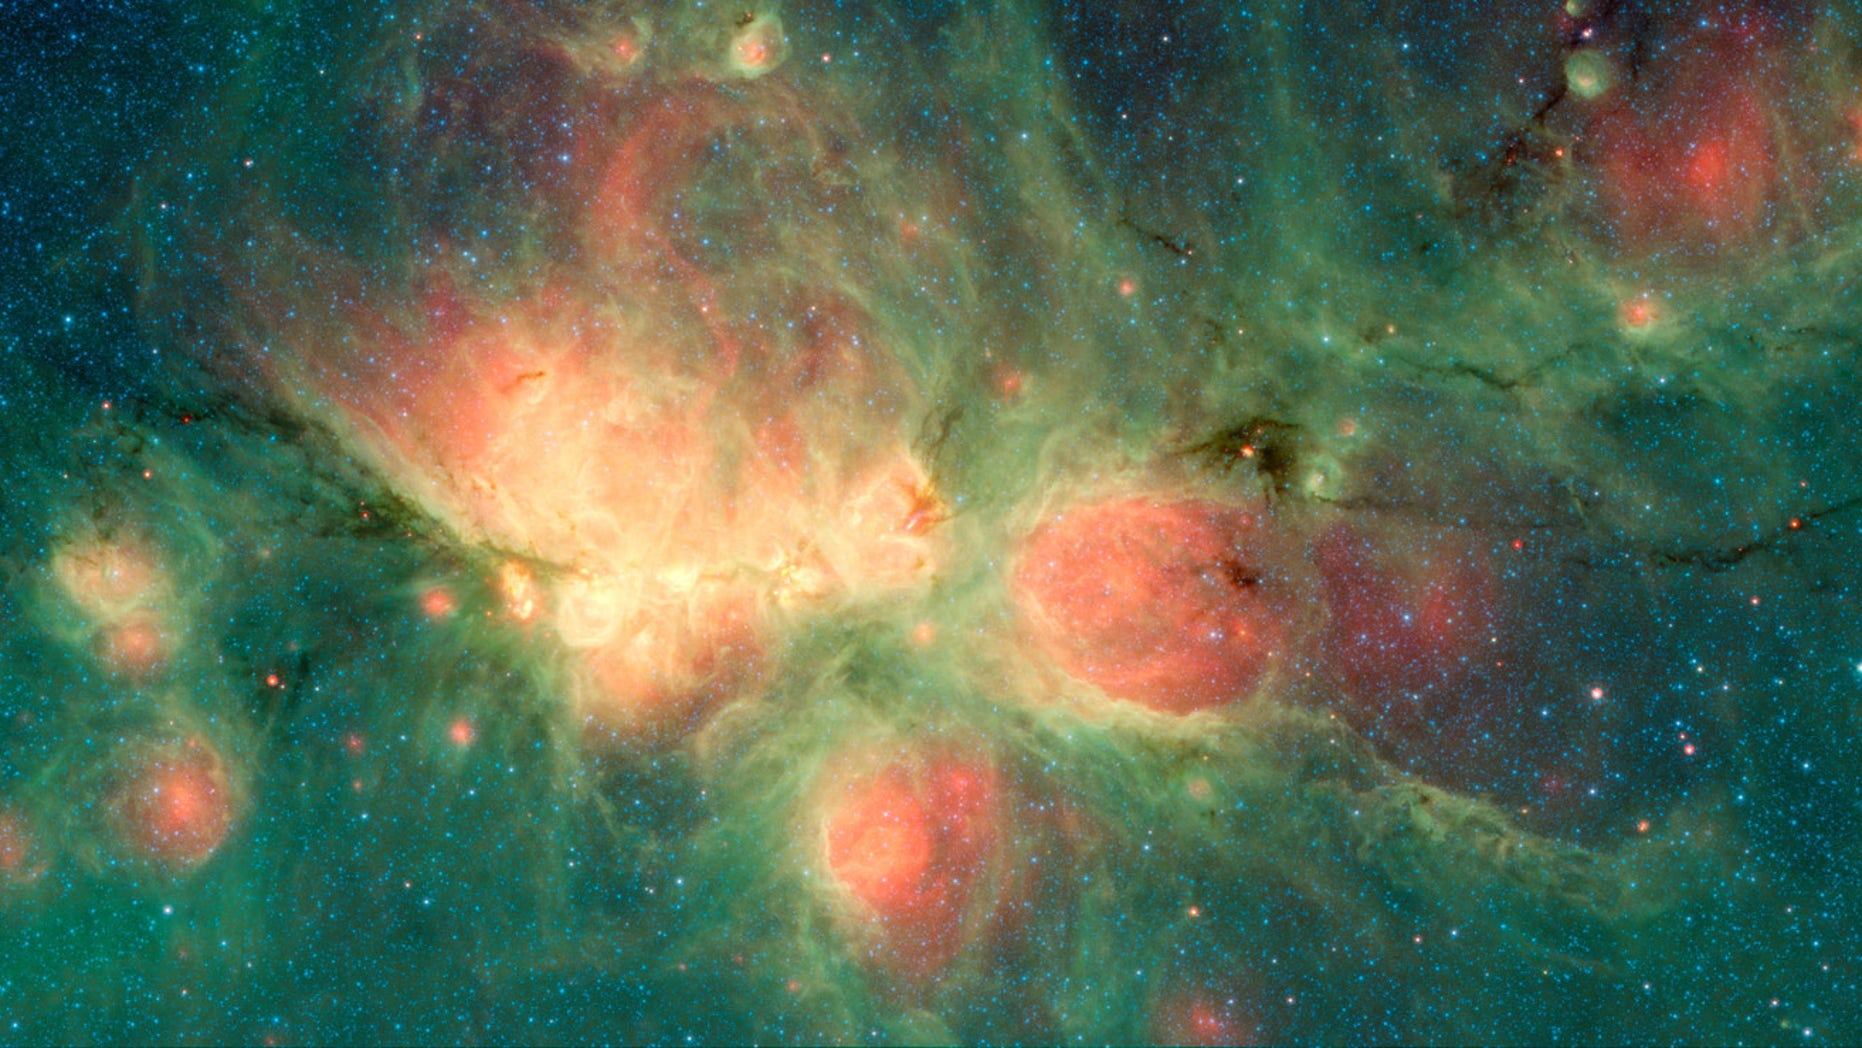 NASA's Spitzer Space Telescope captured this view of the Cat's Paw Nebula within the Milky Way.